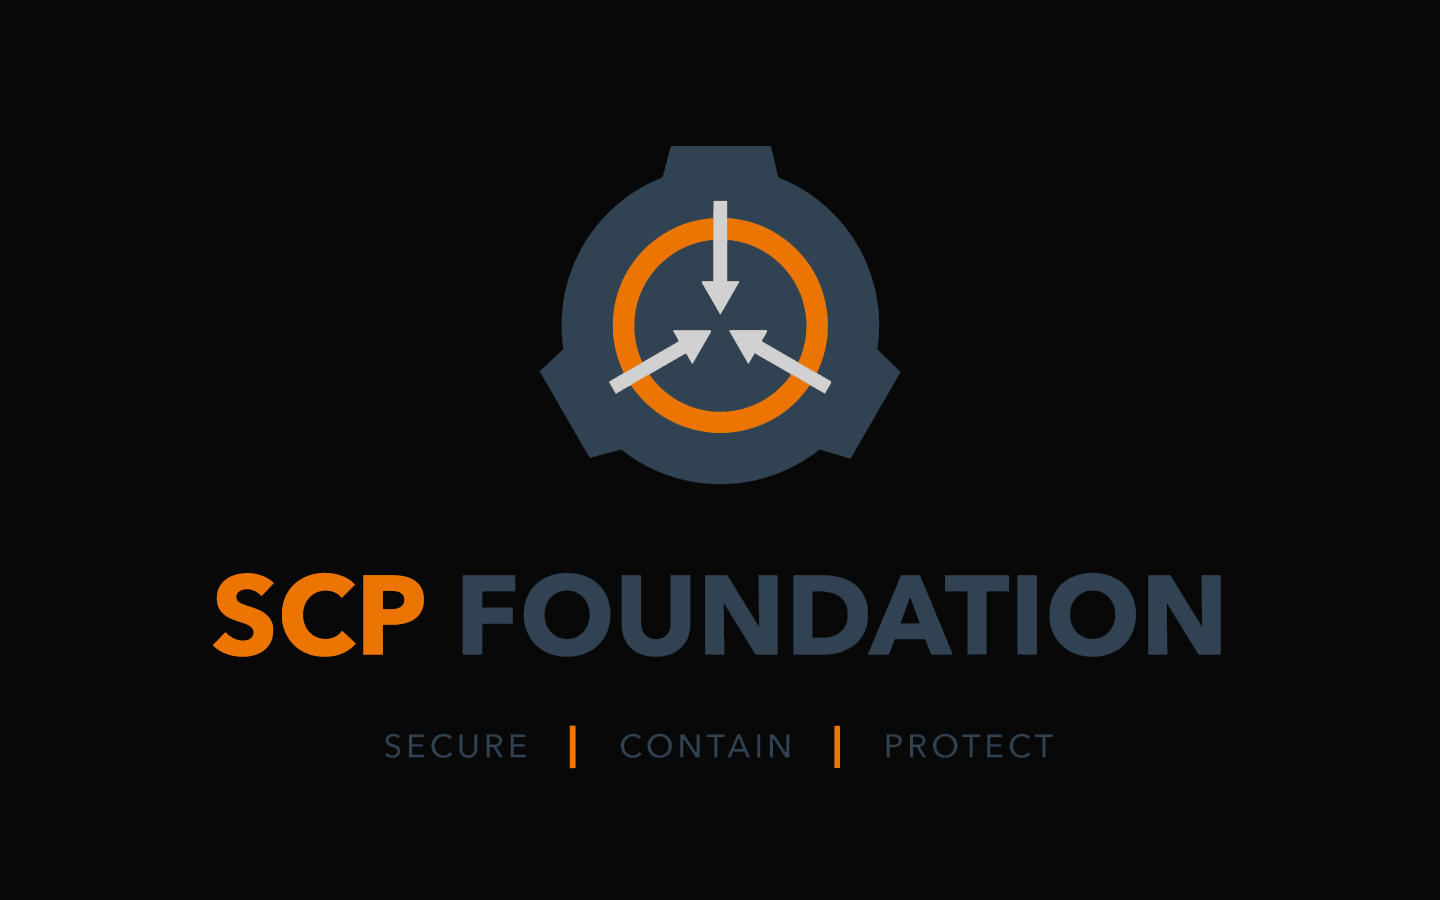 Scp Foundation 1440x900 Background Flat Colors By